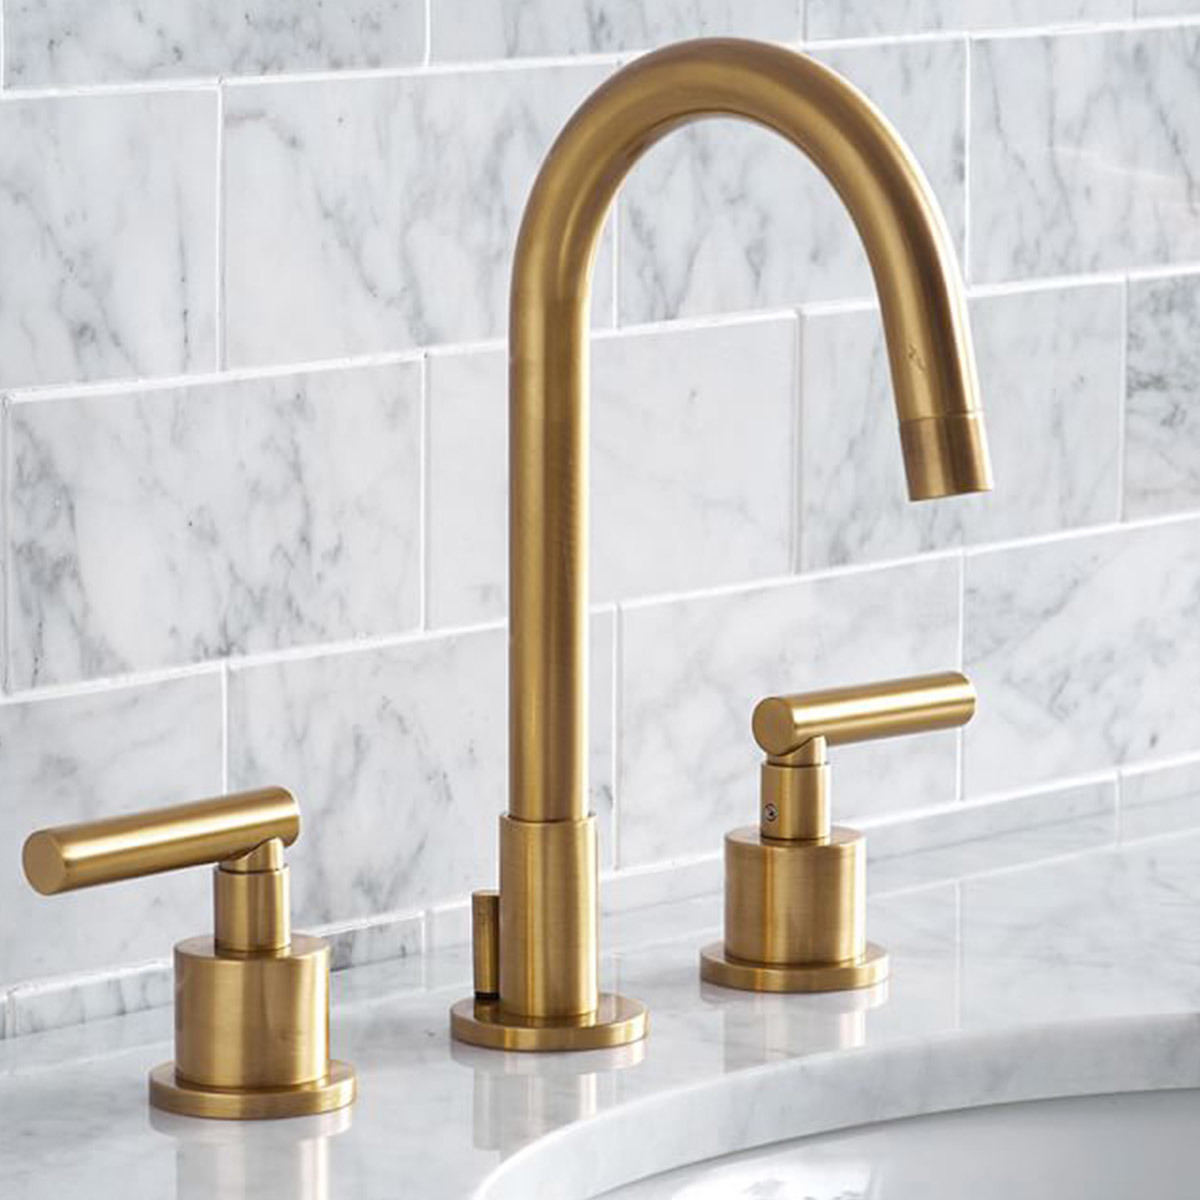 Faucet made with a high-arch design and brass finish photo